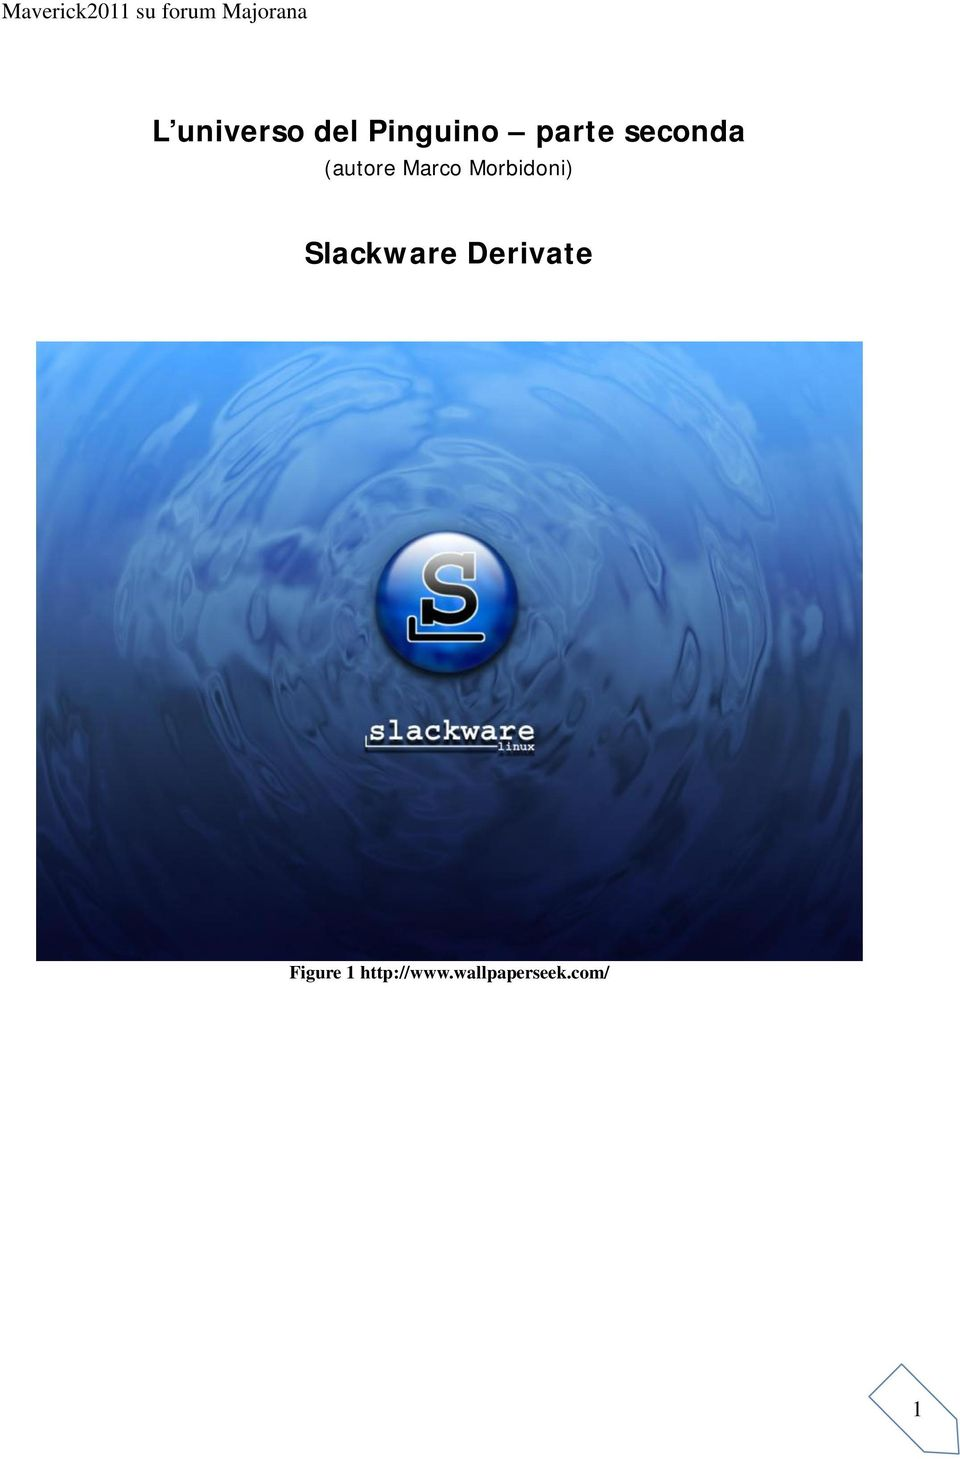 Morbidoni) Slackware Derivate